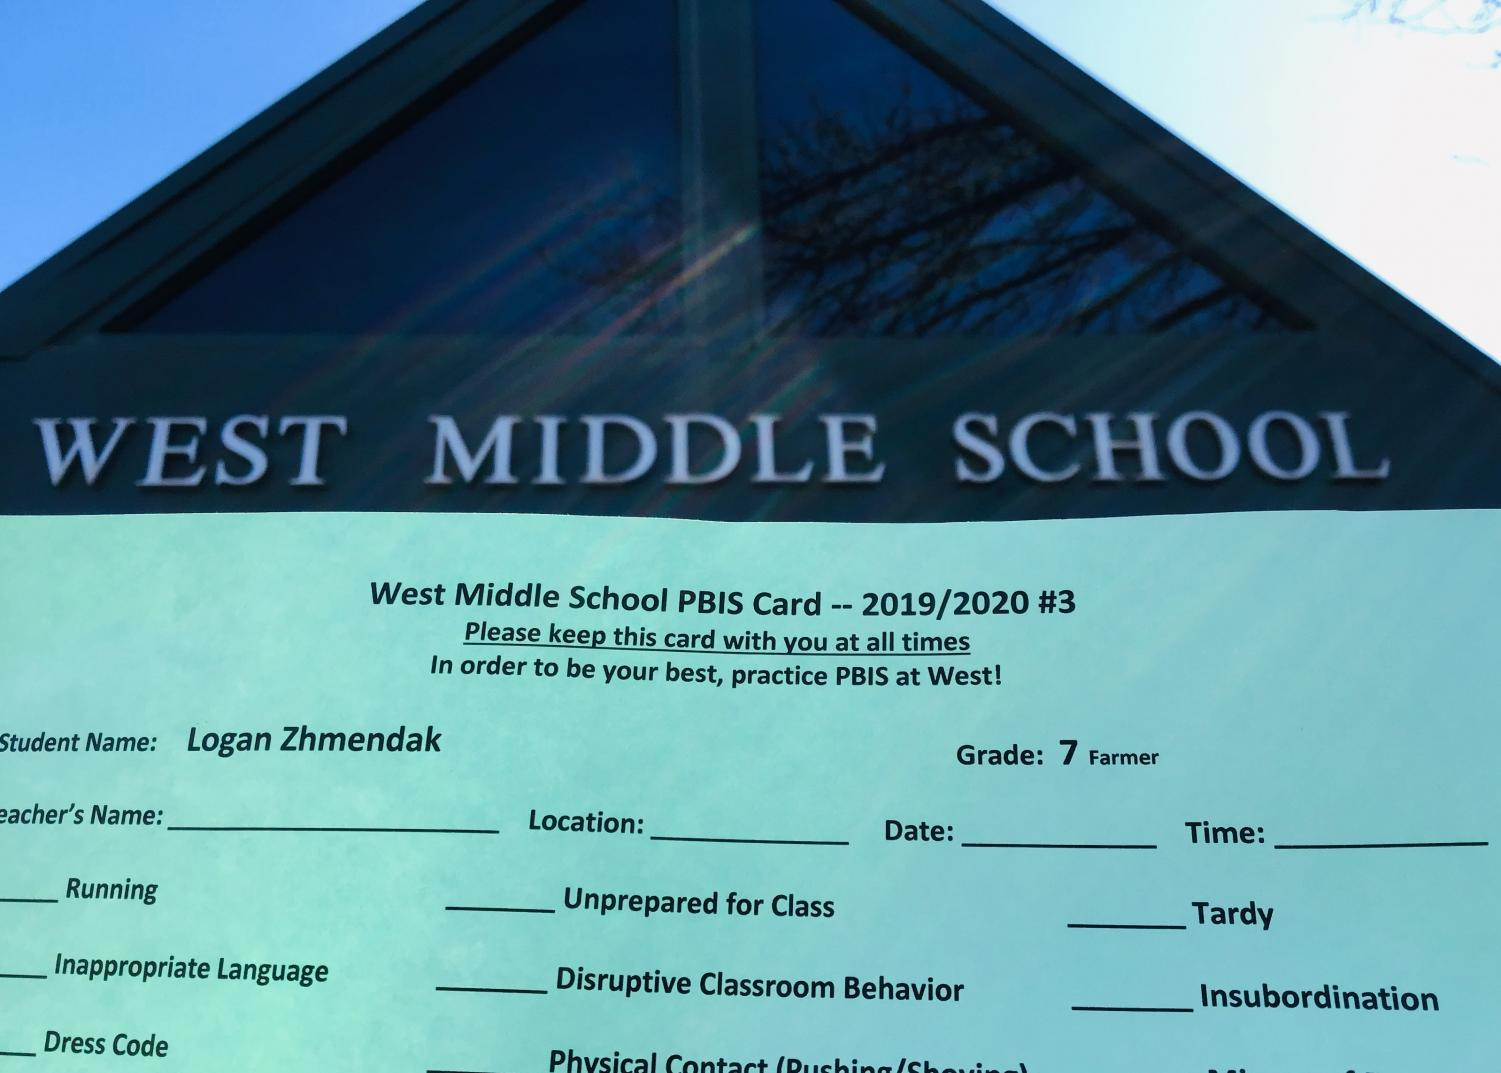 West+Middle+School%27s+PBIS+card.